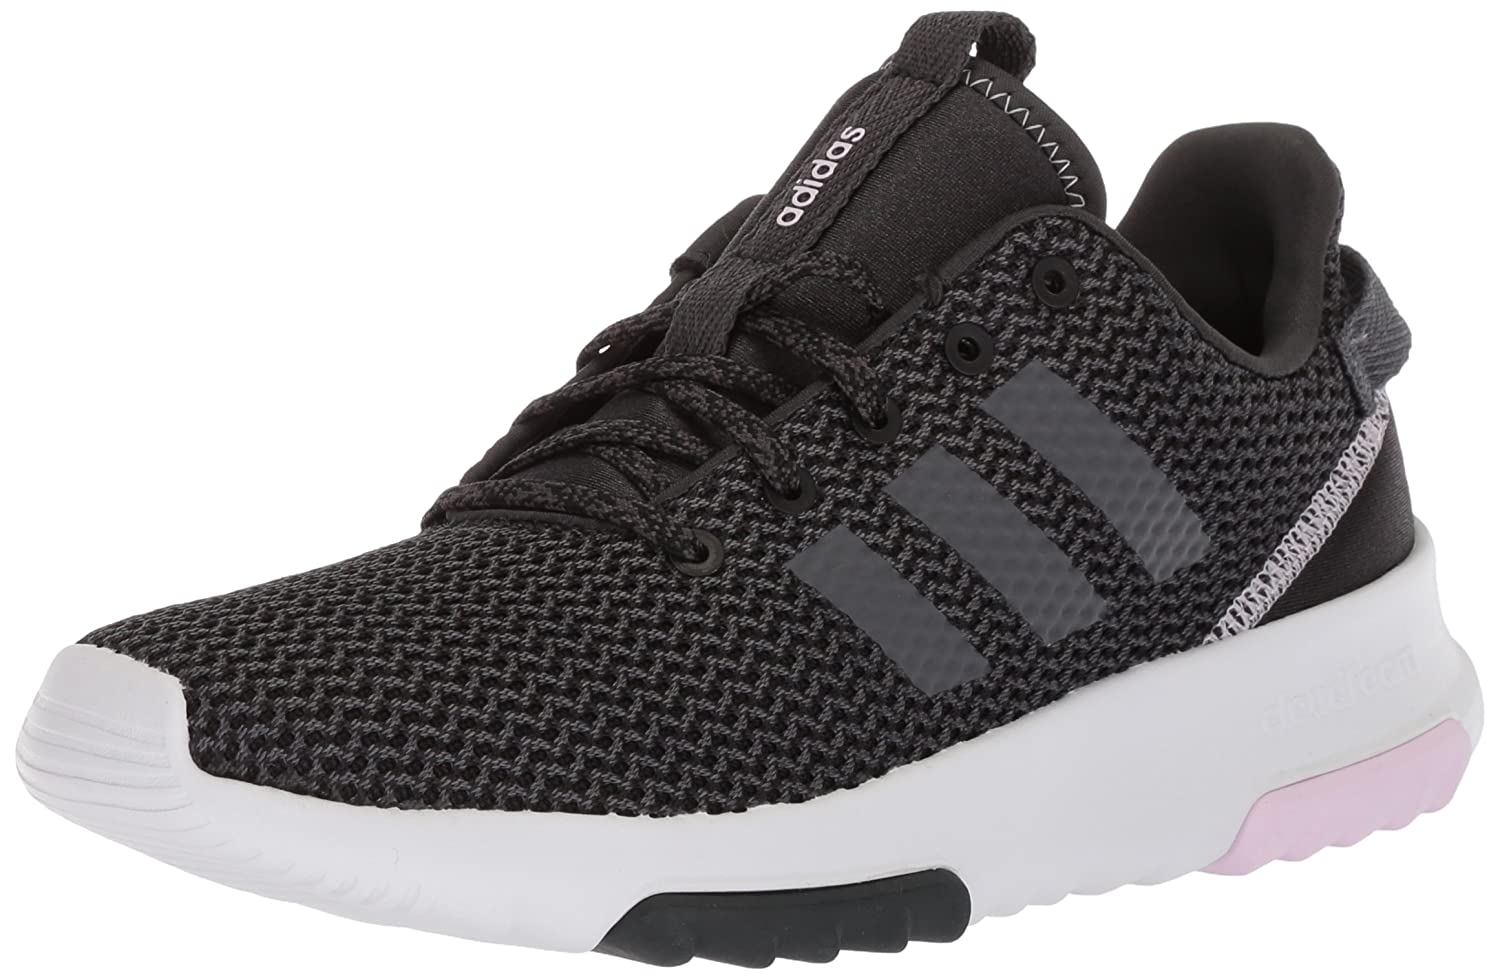 adidas Originals Women's Cf Racer Tr W Running Shoe B072FGJV99 5.5 B(M) US|Carbon/Grey Five/Aero Pink